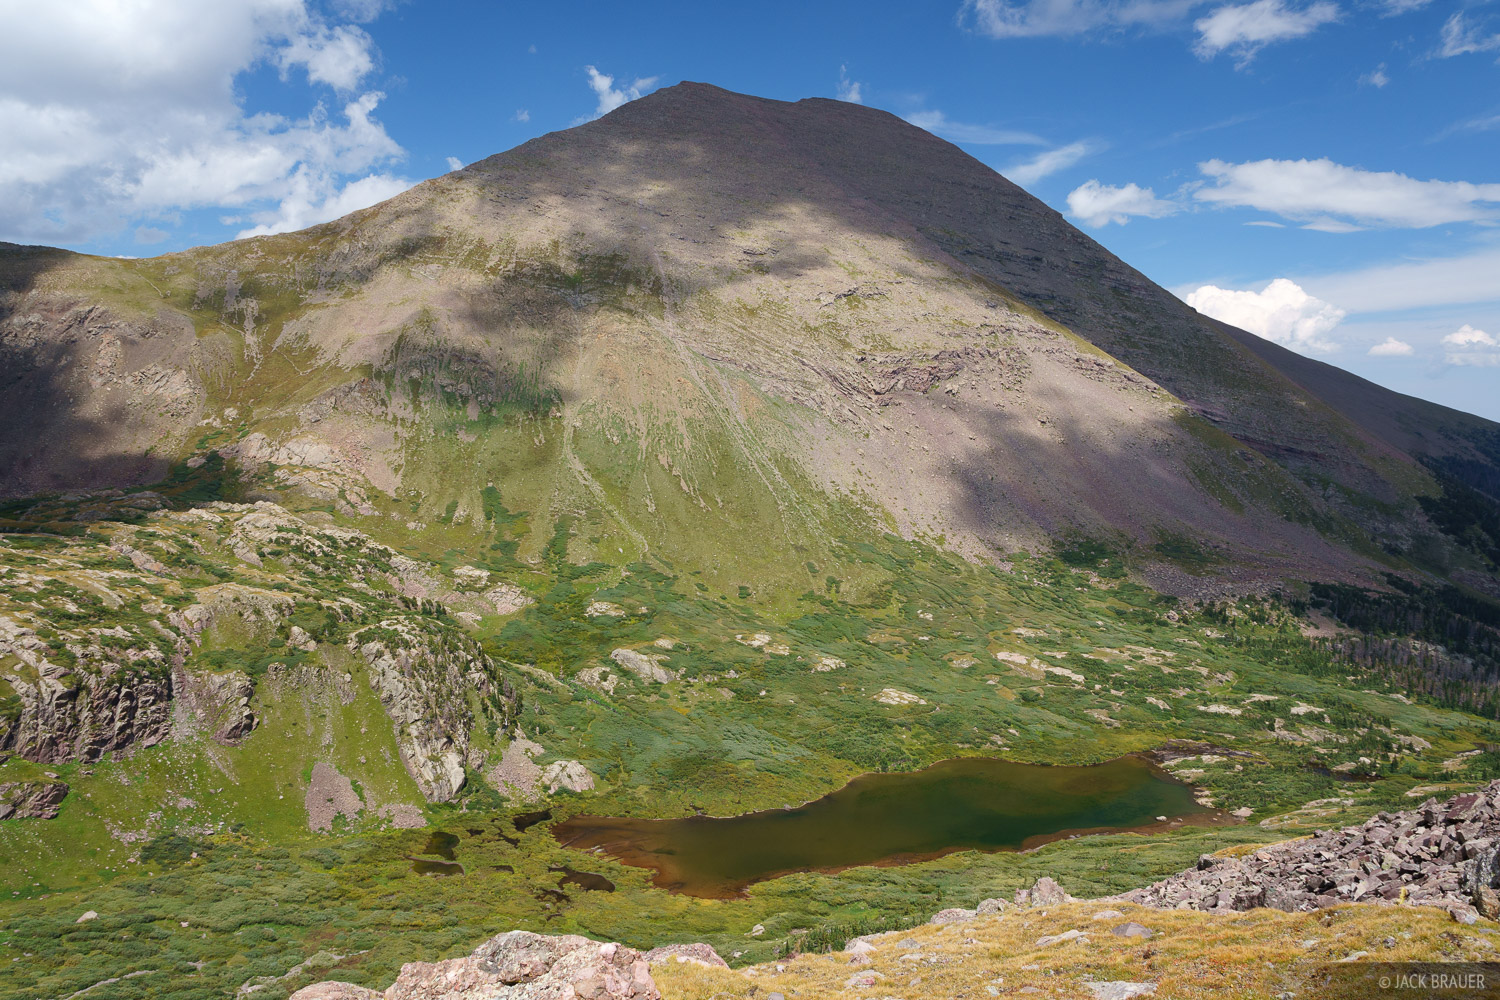 Colorado, Humboldt Peak, Sangre de Cristos, South Colony Lake, 14er, Sangre de Cristo Wilderness, photo